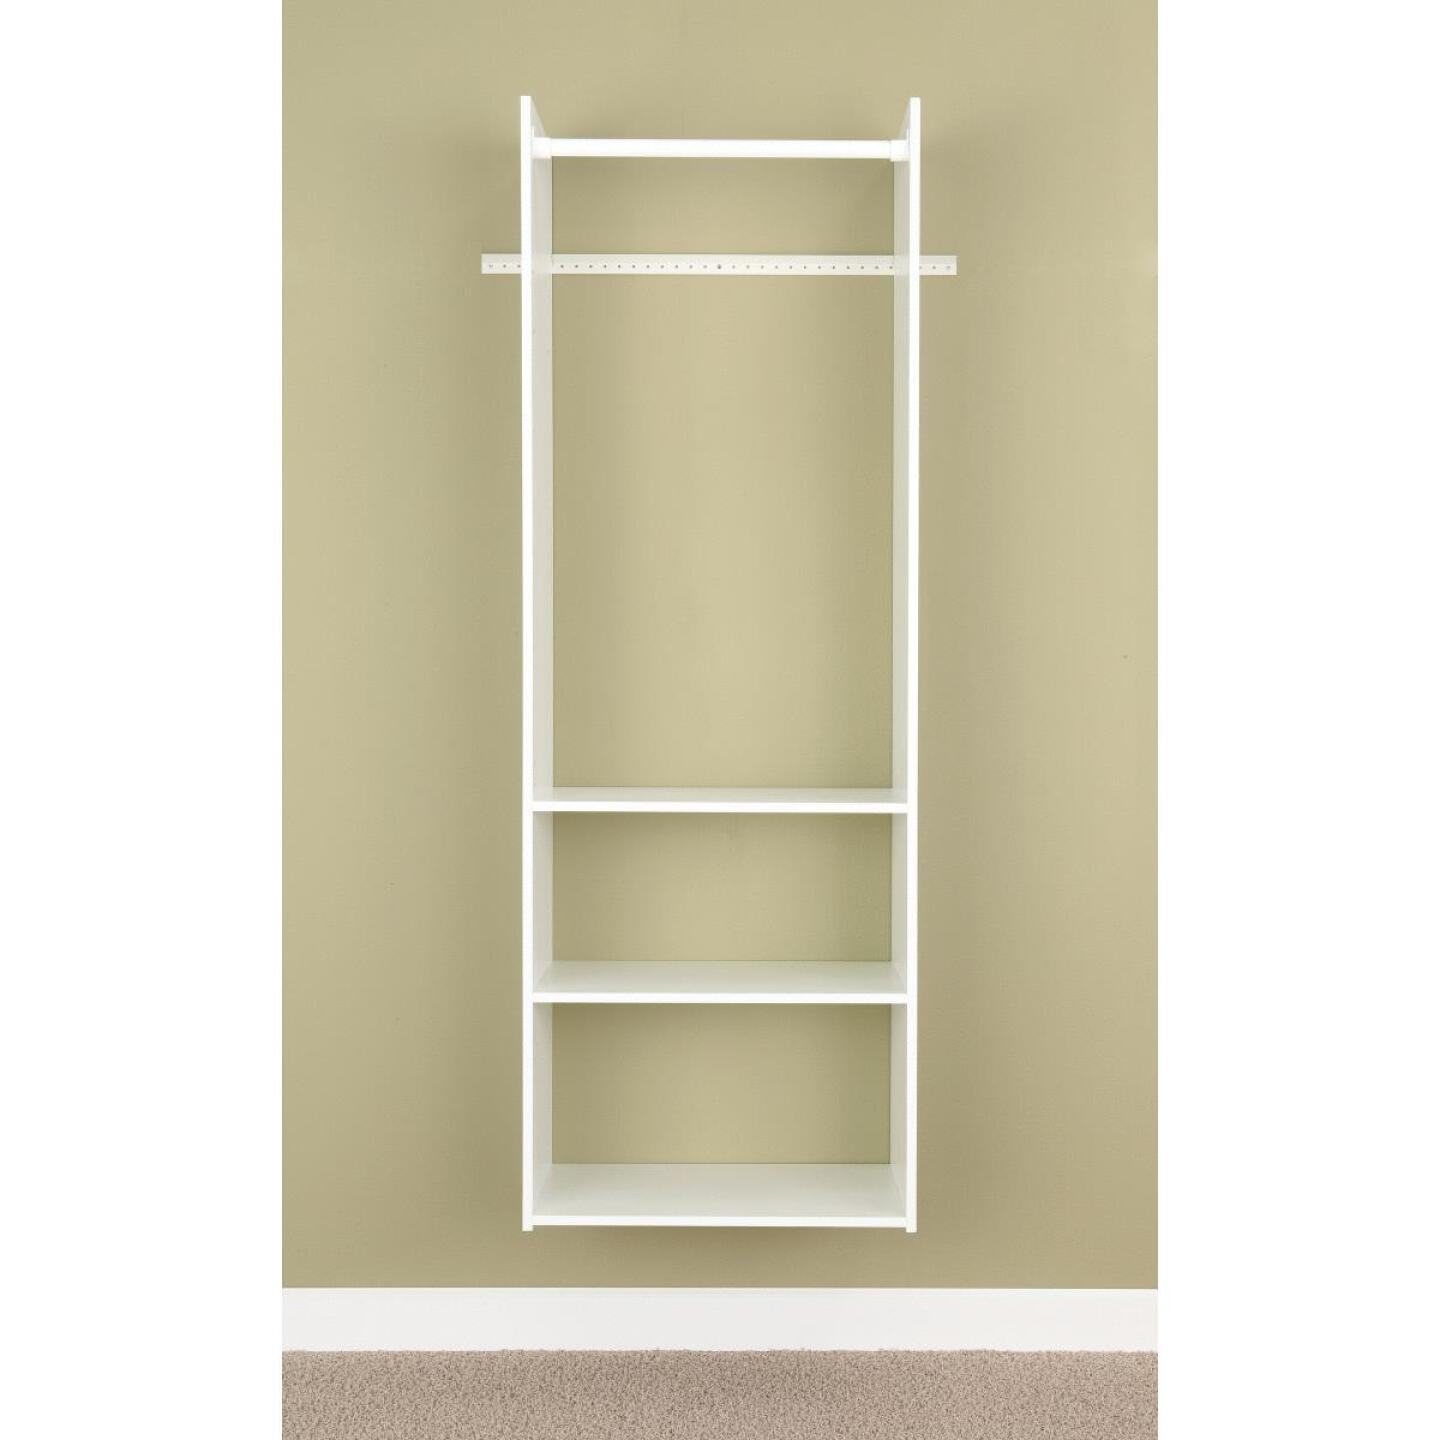 Easy Track Hanging Tower Wall-Mounted Shelving Unit, White Image 2